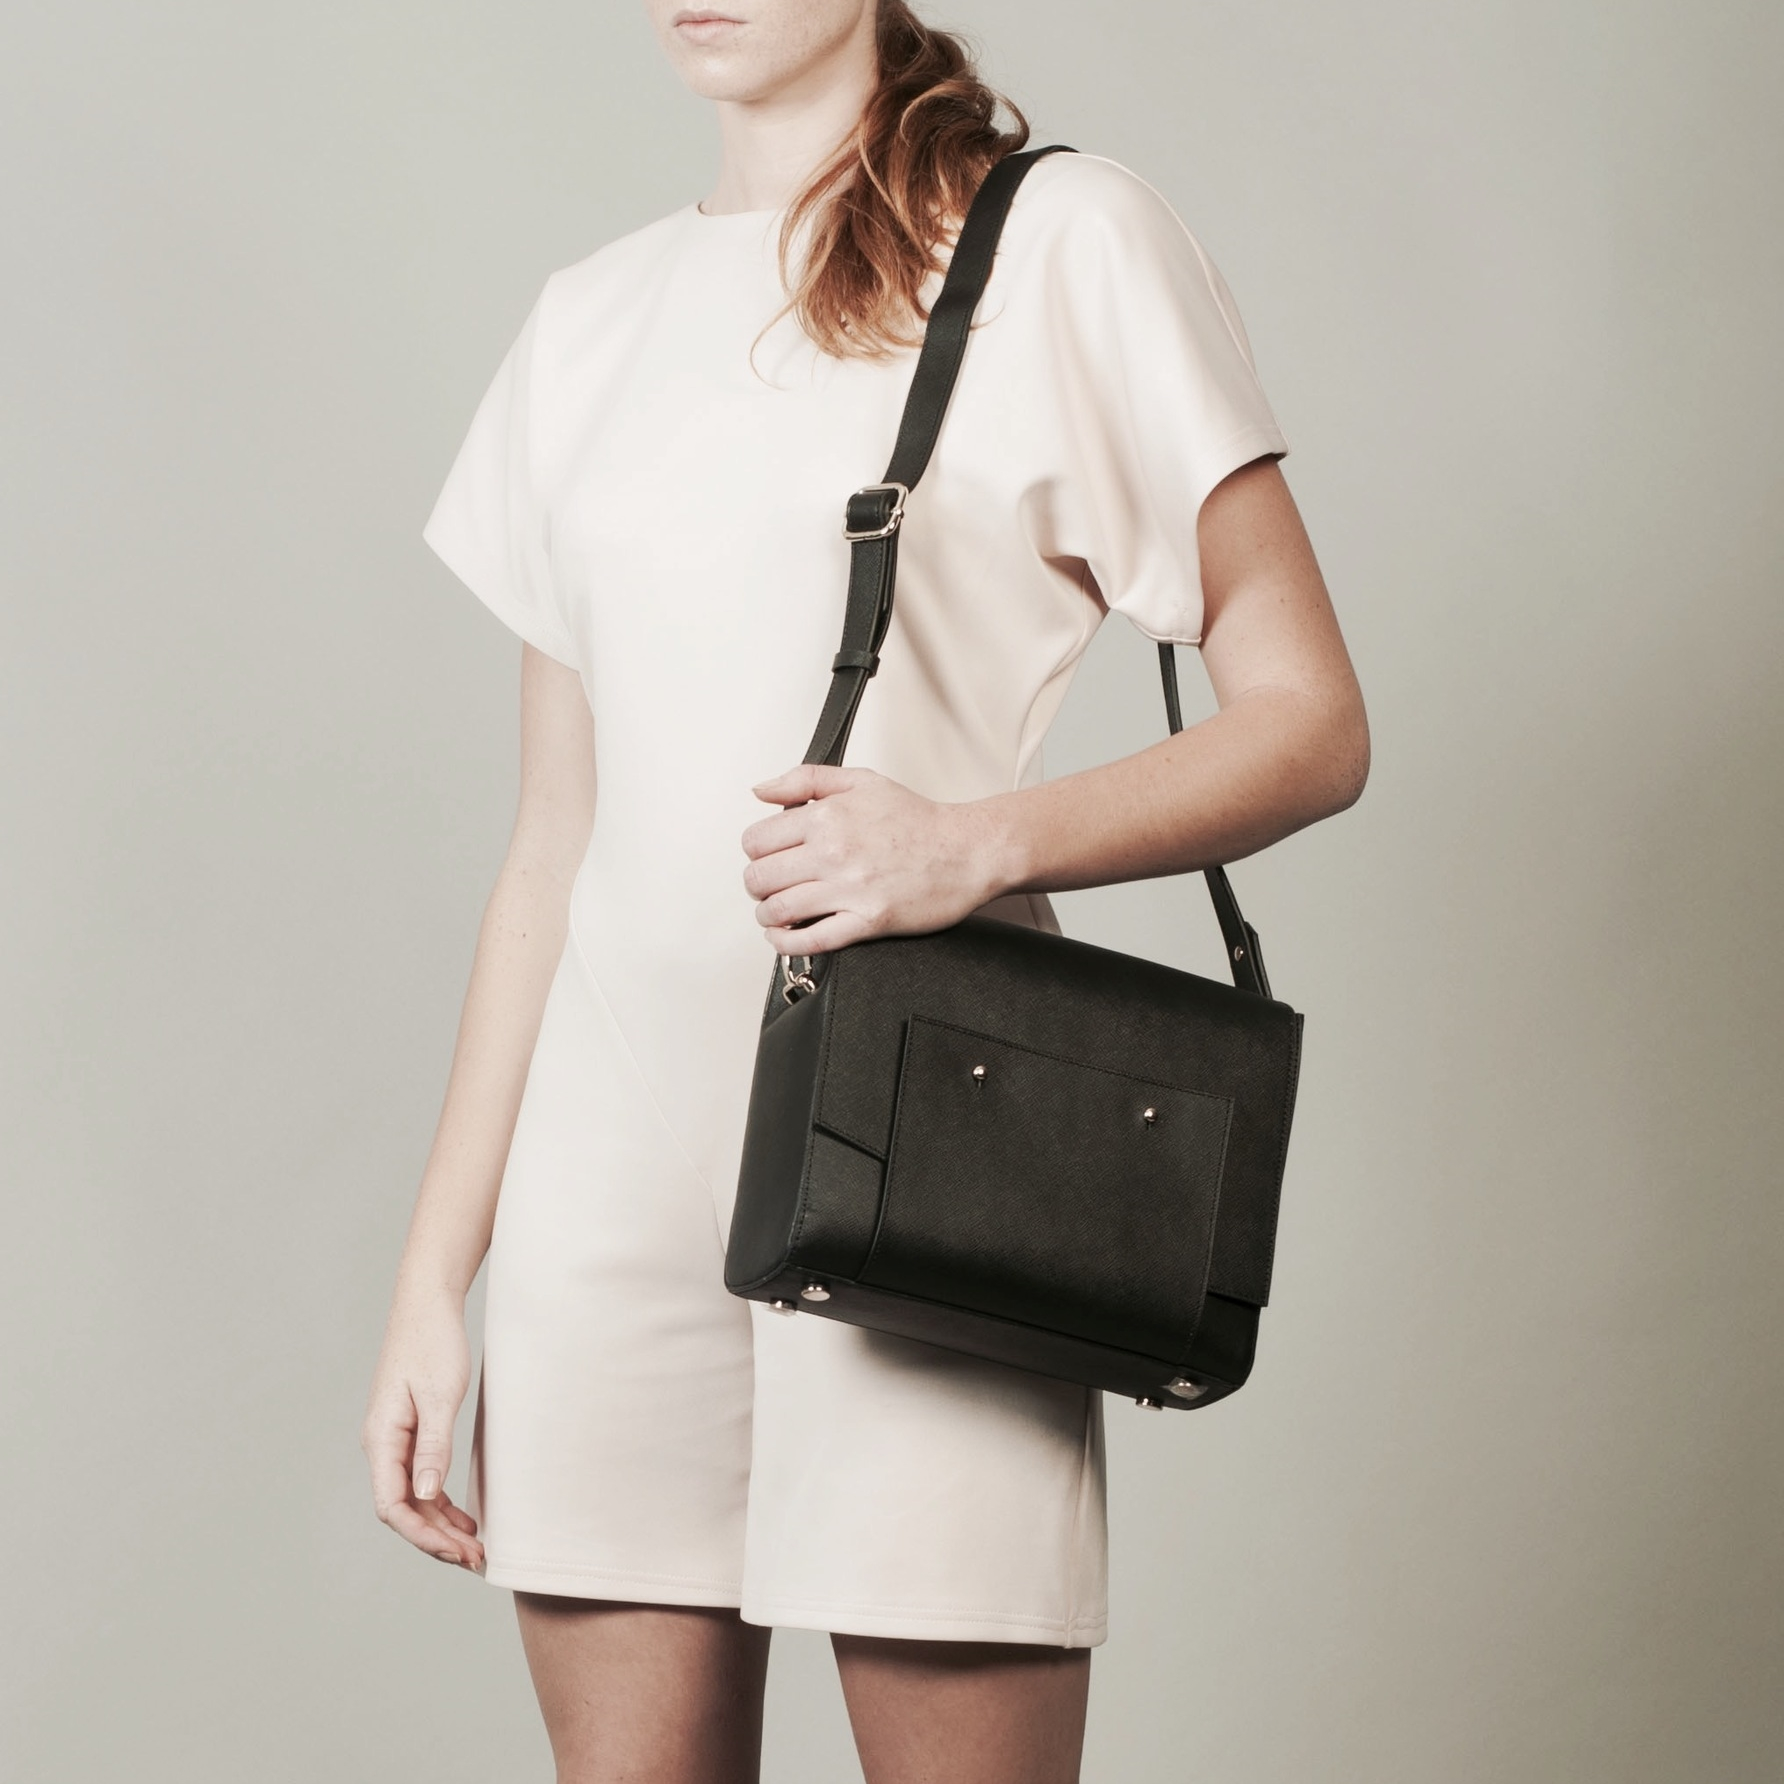 Black Shoulder Bag.jpg